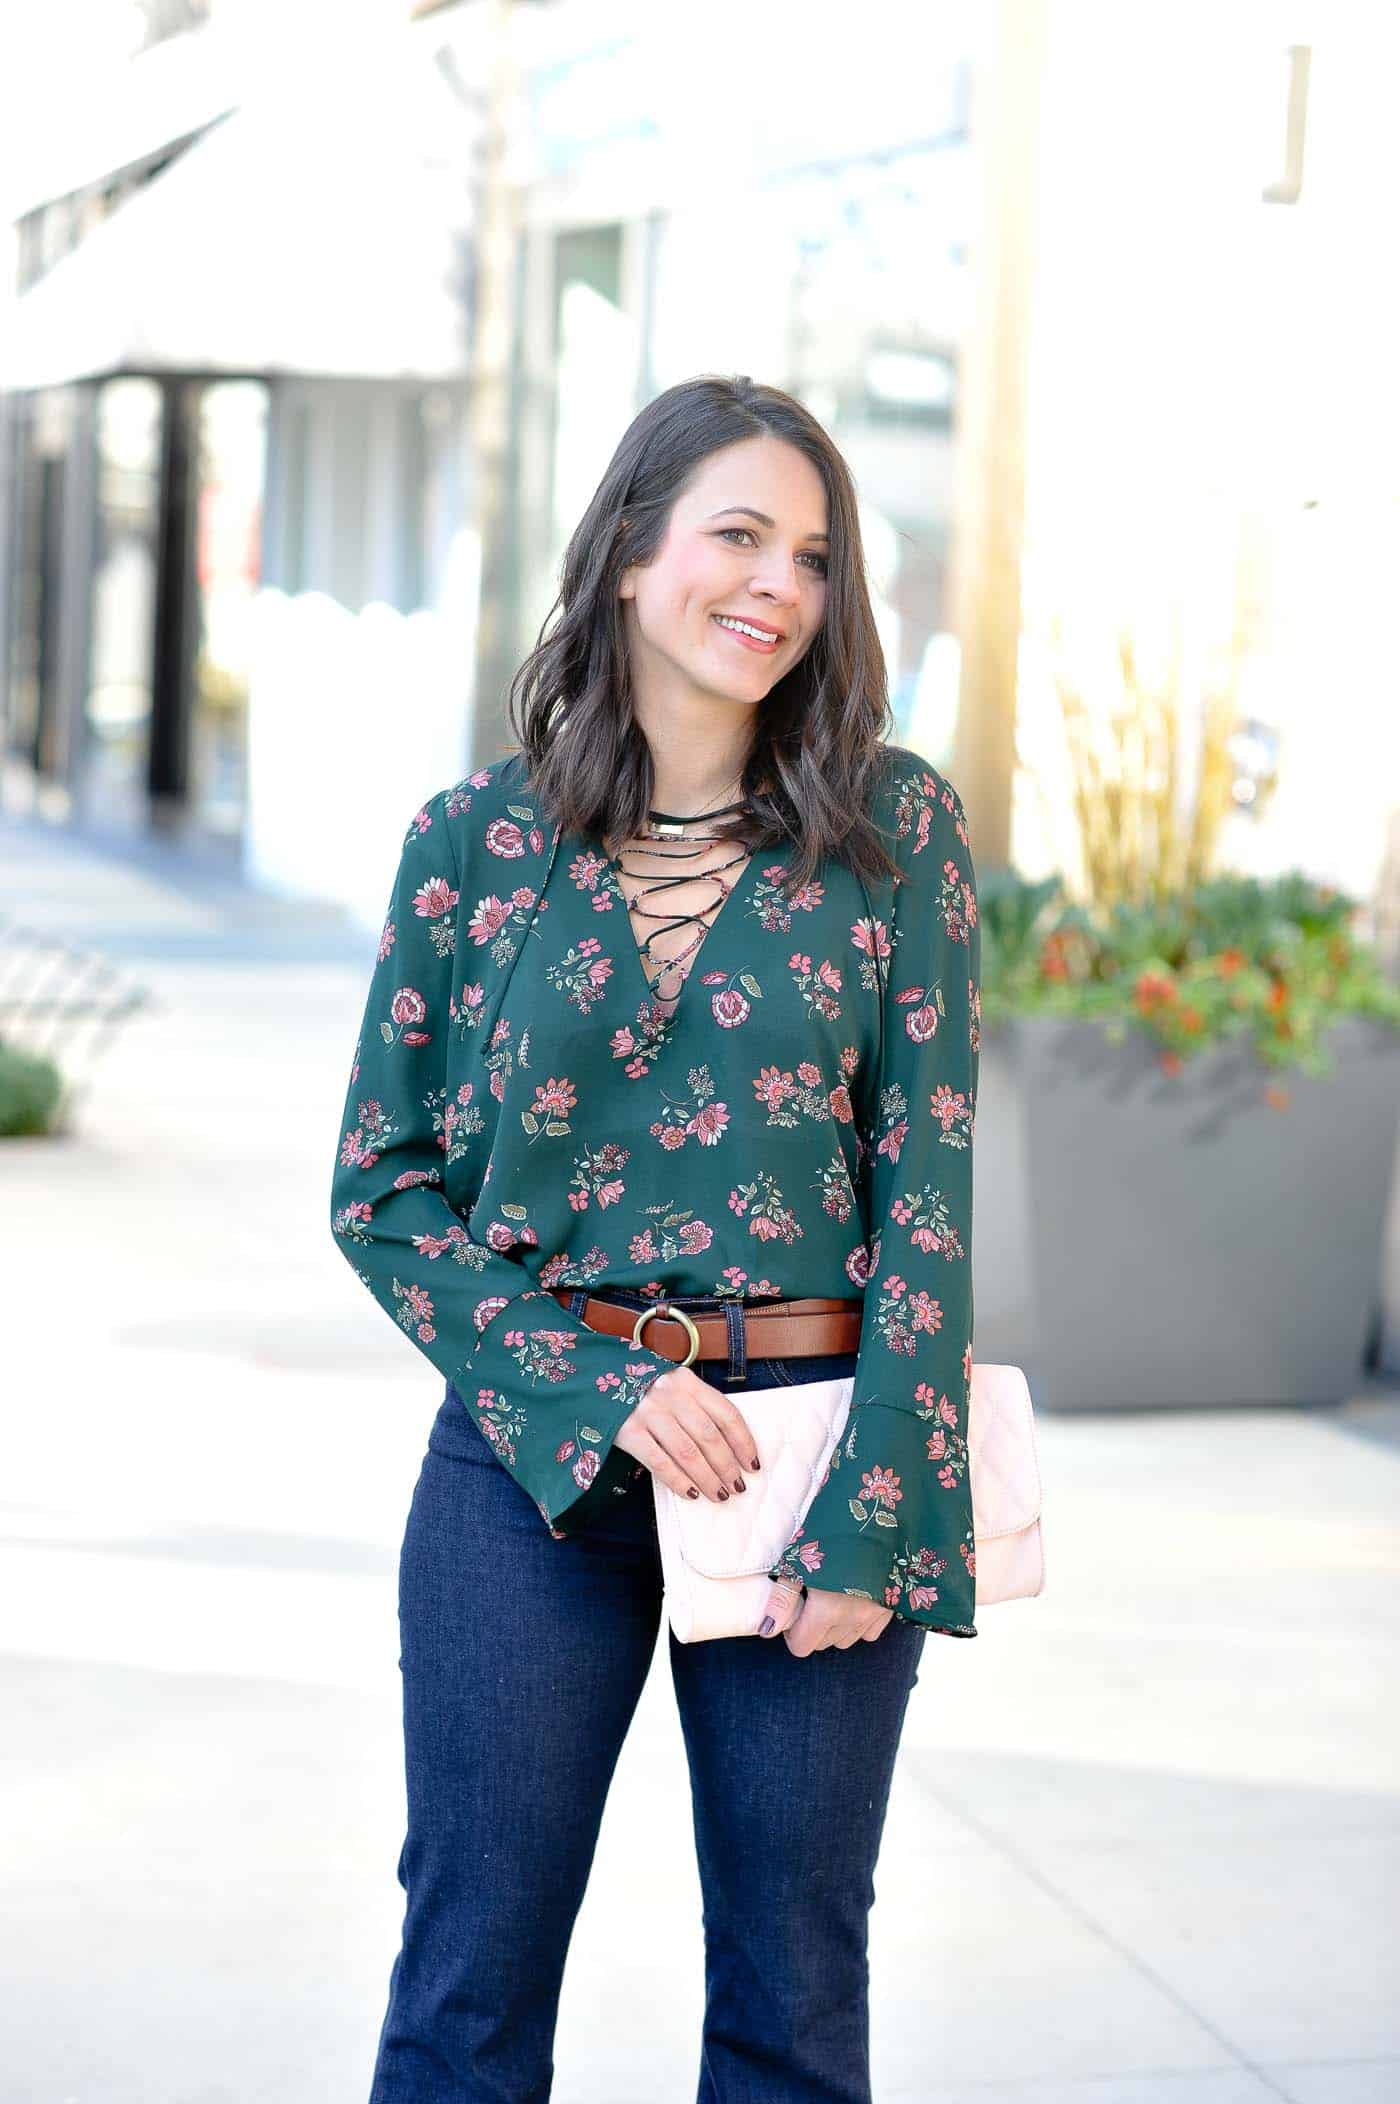 Lace Up Bell Sleeve Blouse - green and pink outfits - styling high waisted wide leg jeans - everyday outfit ideas - My Style Vita @mystylevita-2